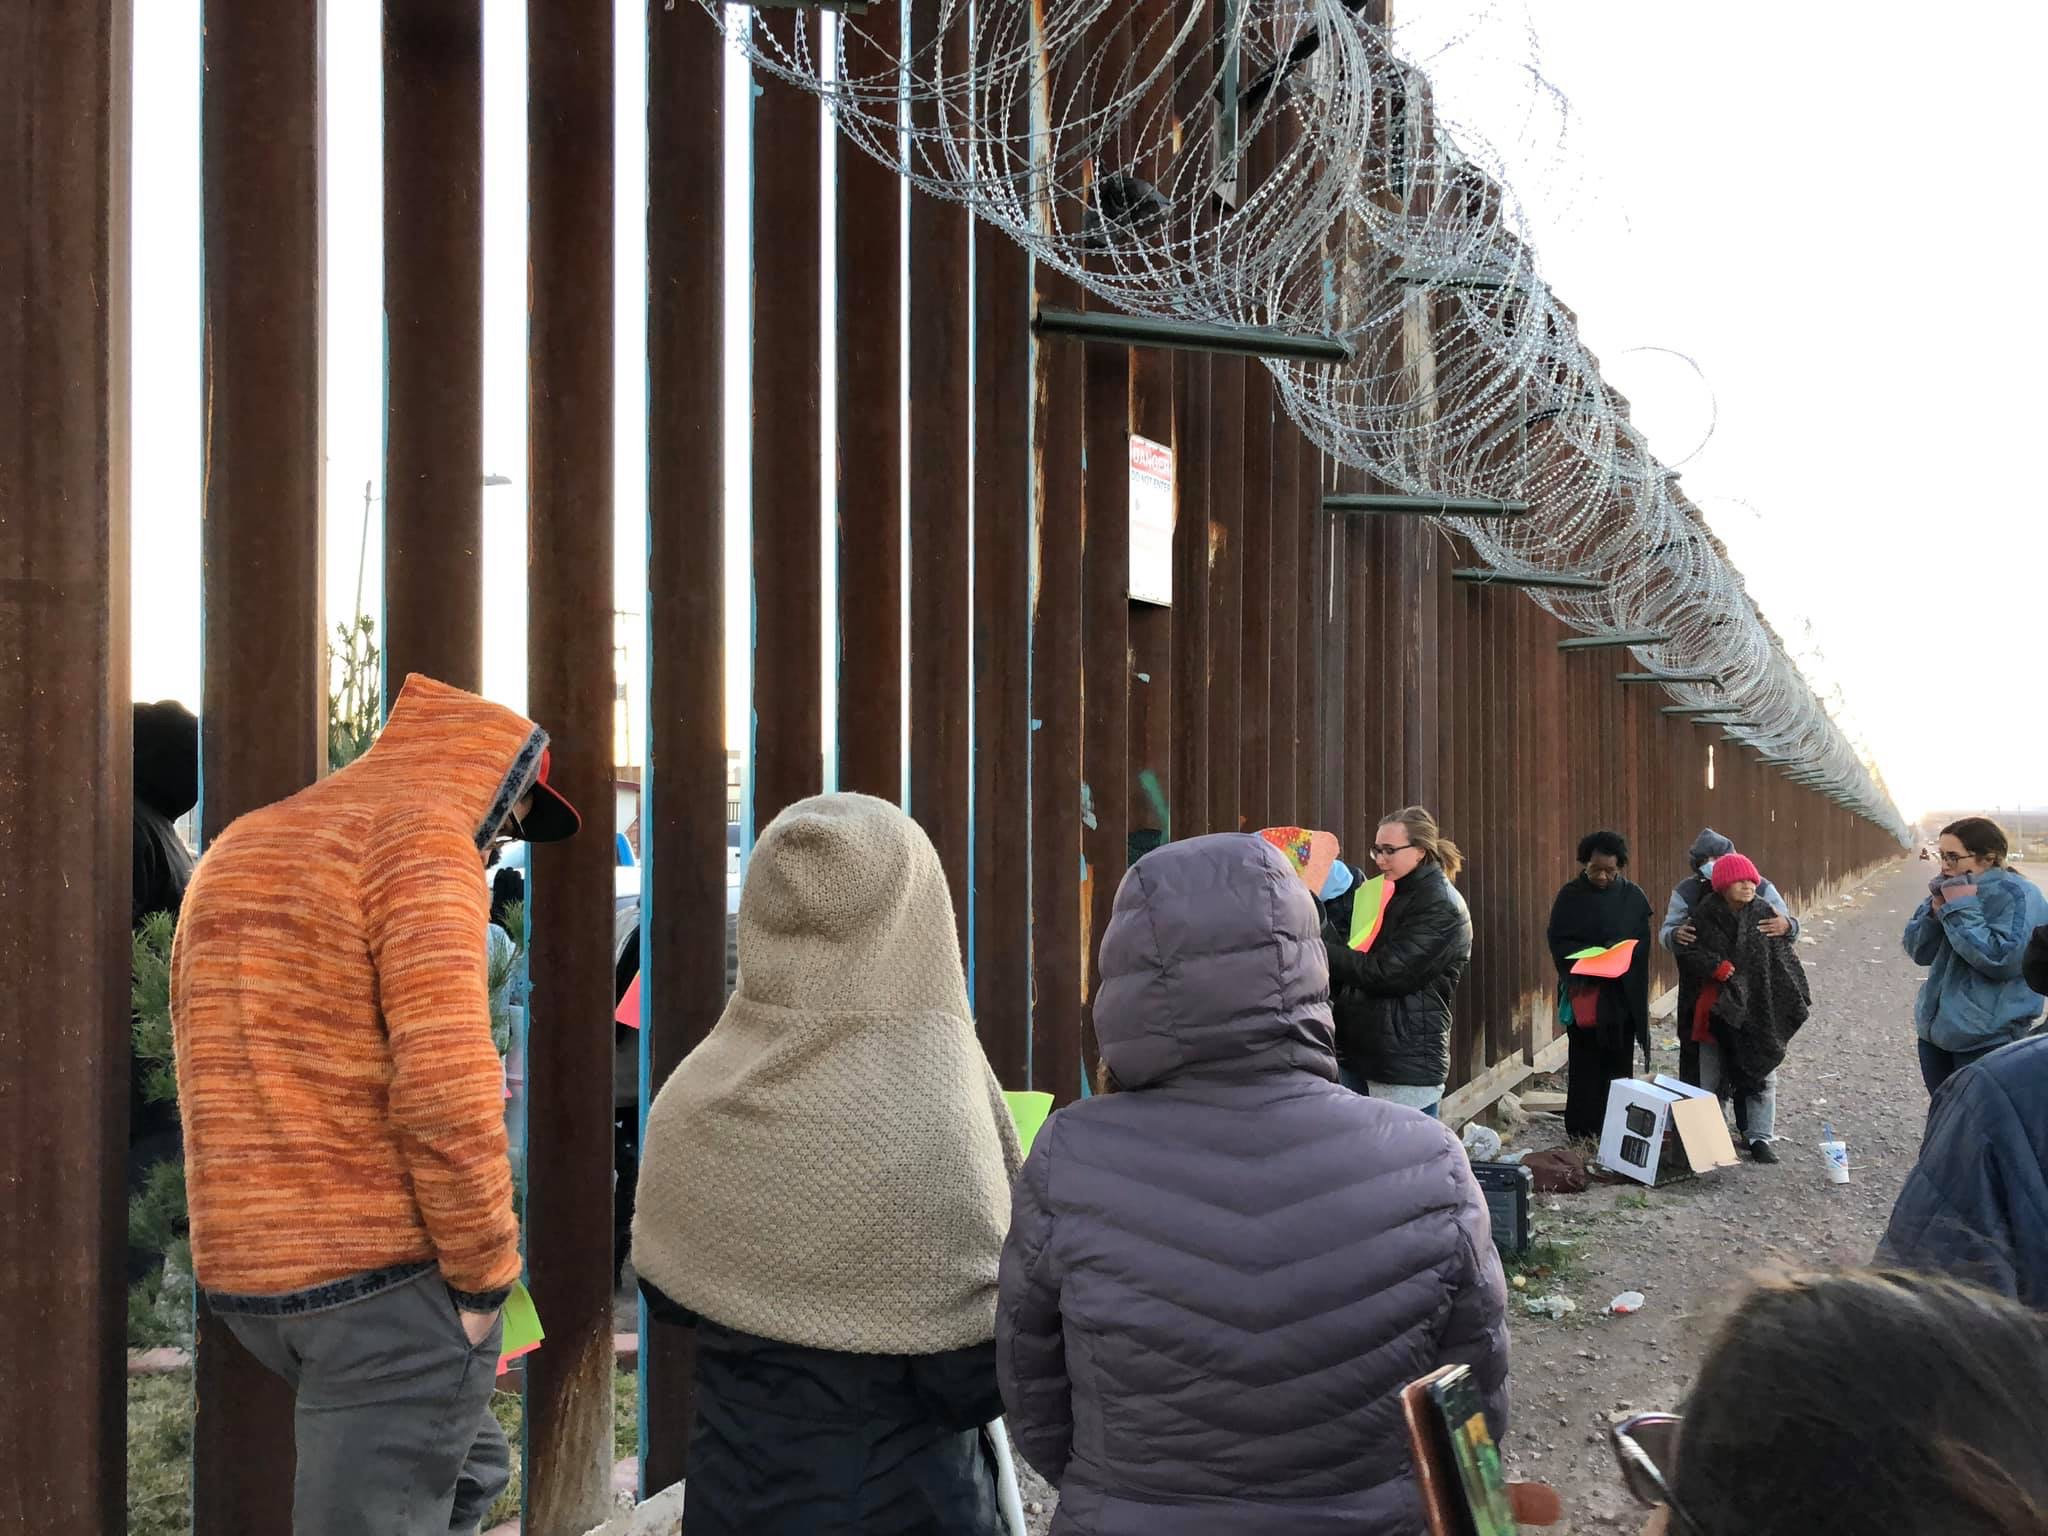 Students at the border